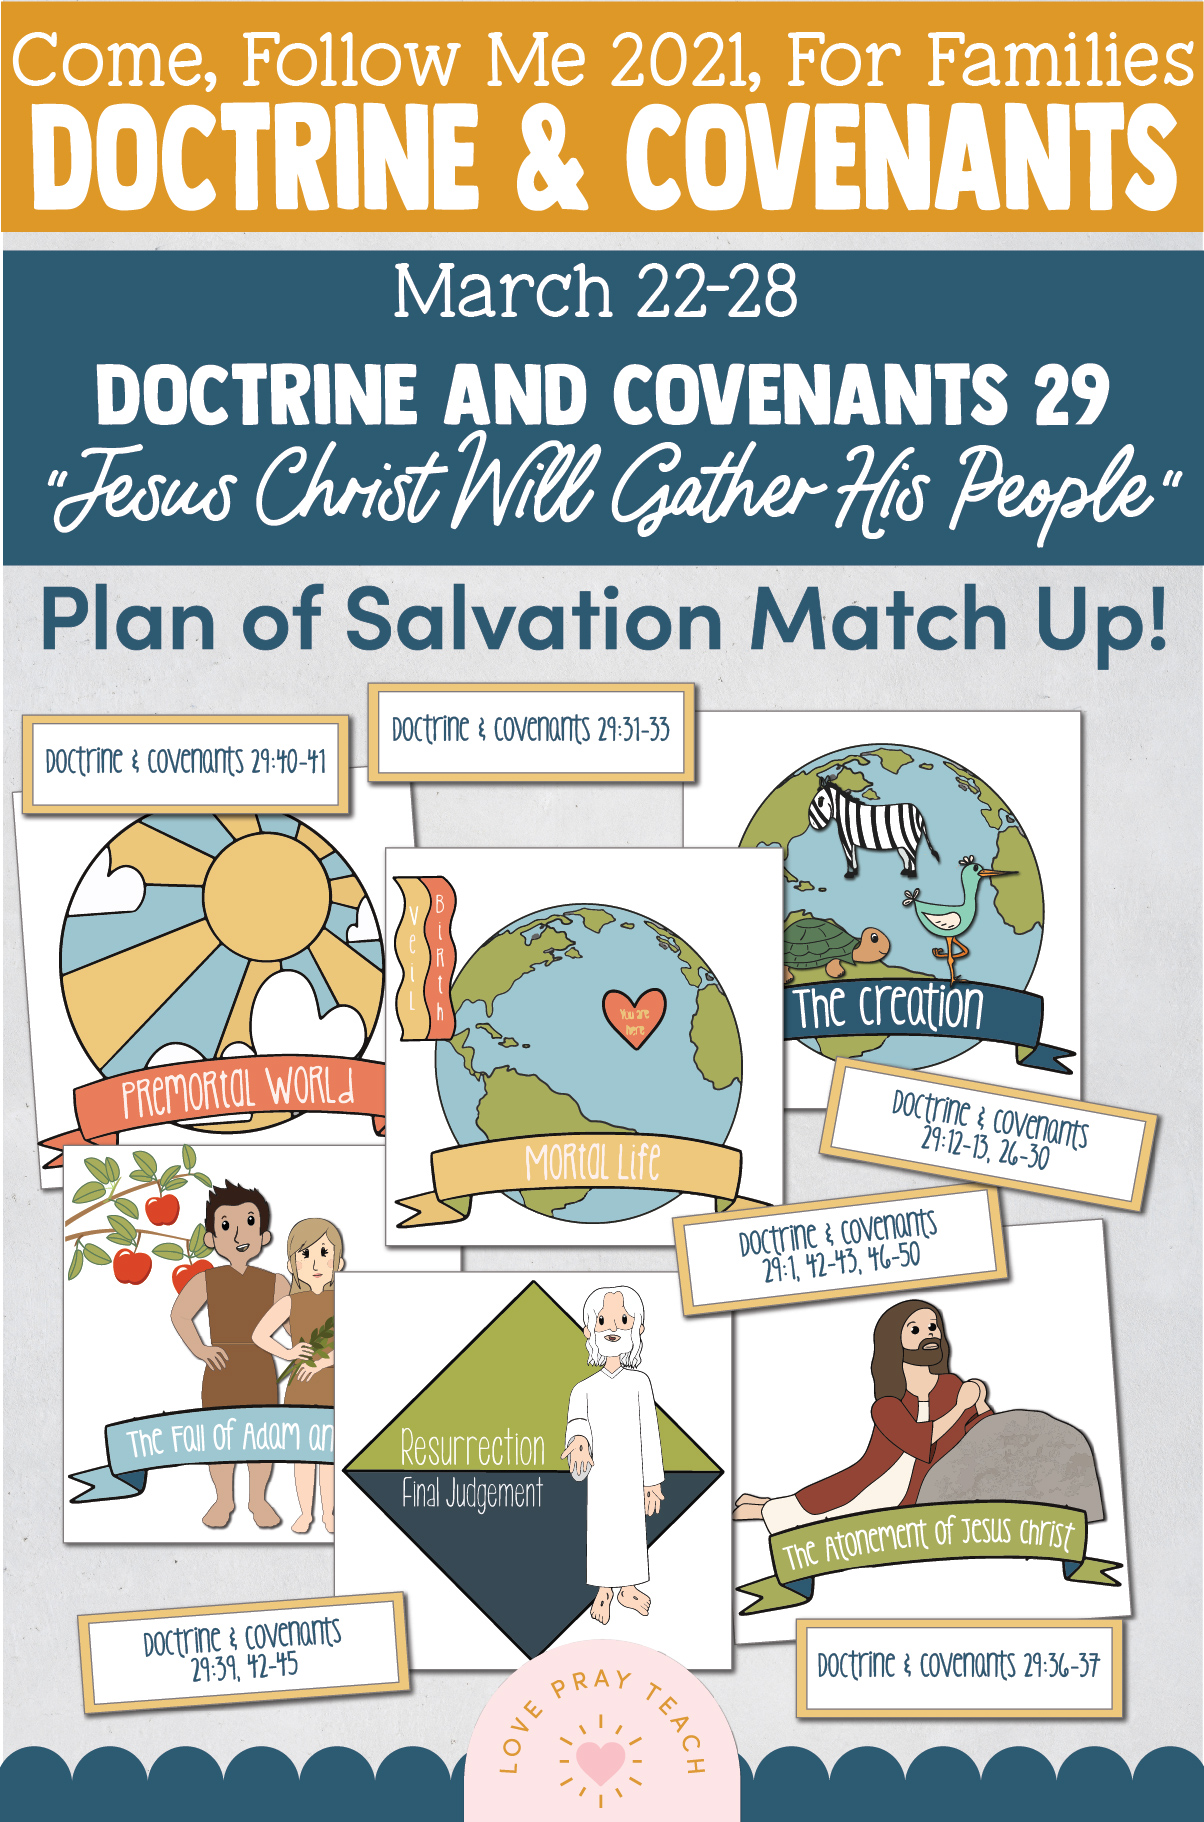 """Come, Follow Me—For Individuals and Families: Doctrine And Covenants 2021, March Week 4:March 22-28, Doctrine and Covenants 29, """"Jesus Christ Will Gather His People"""""""